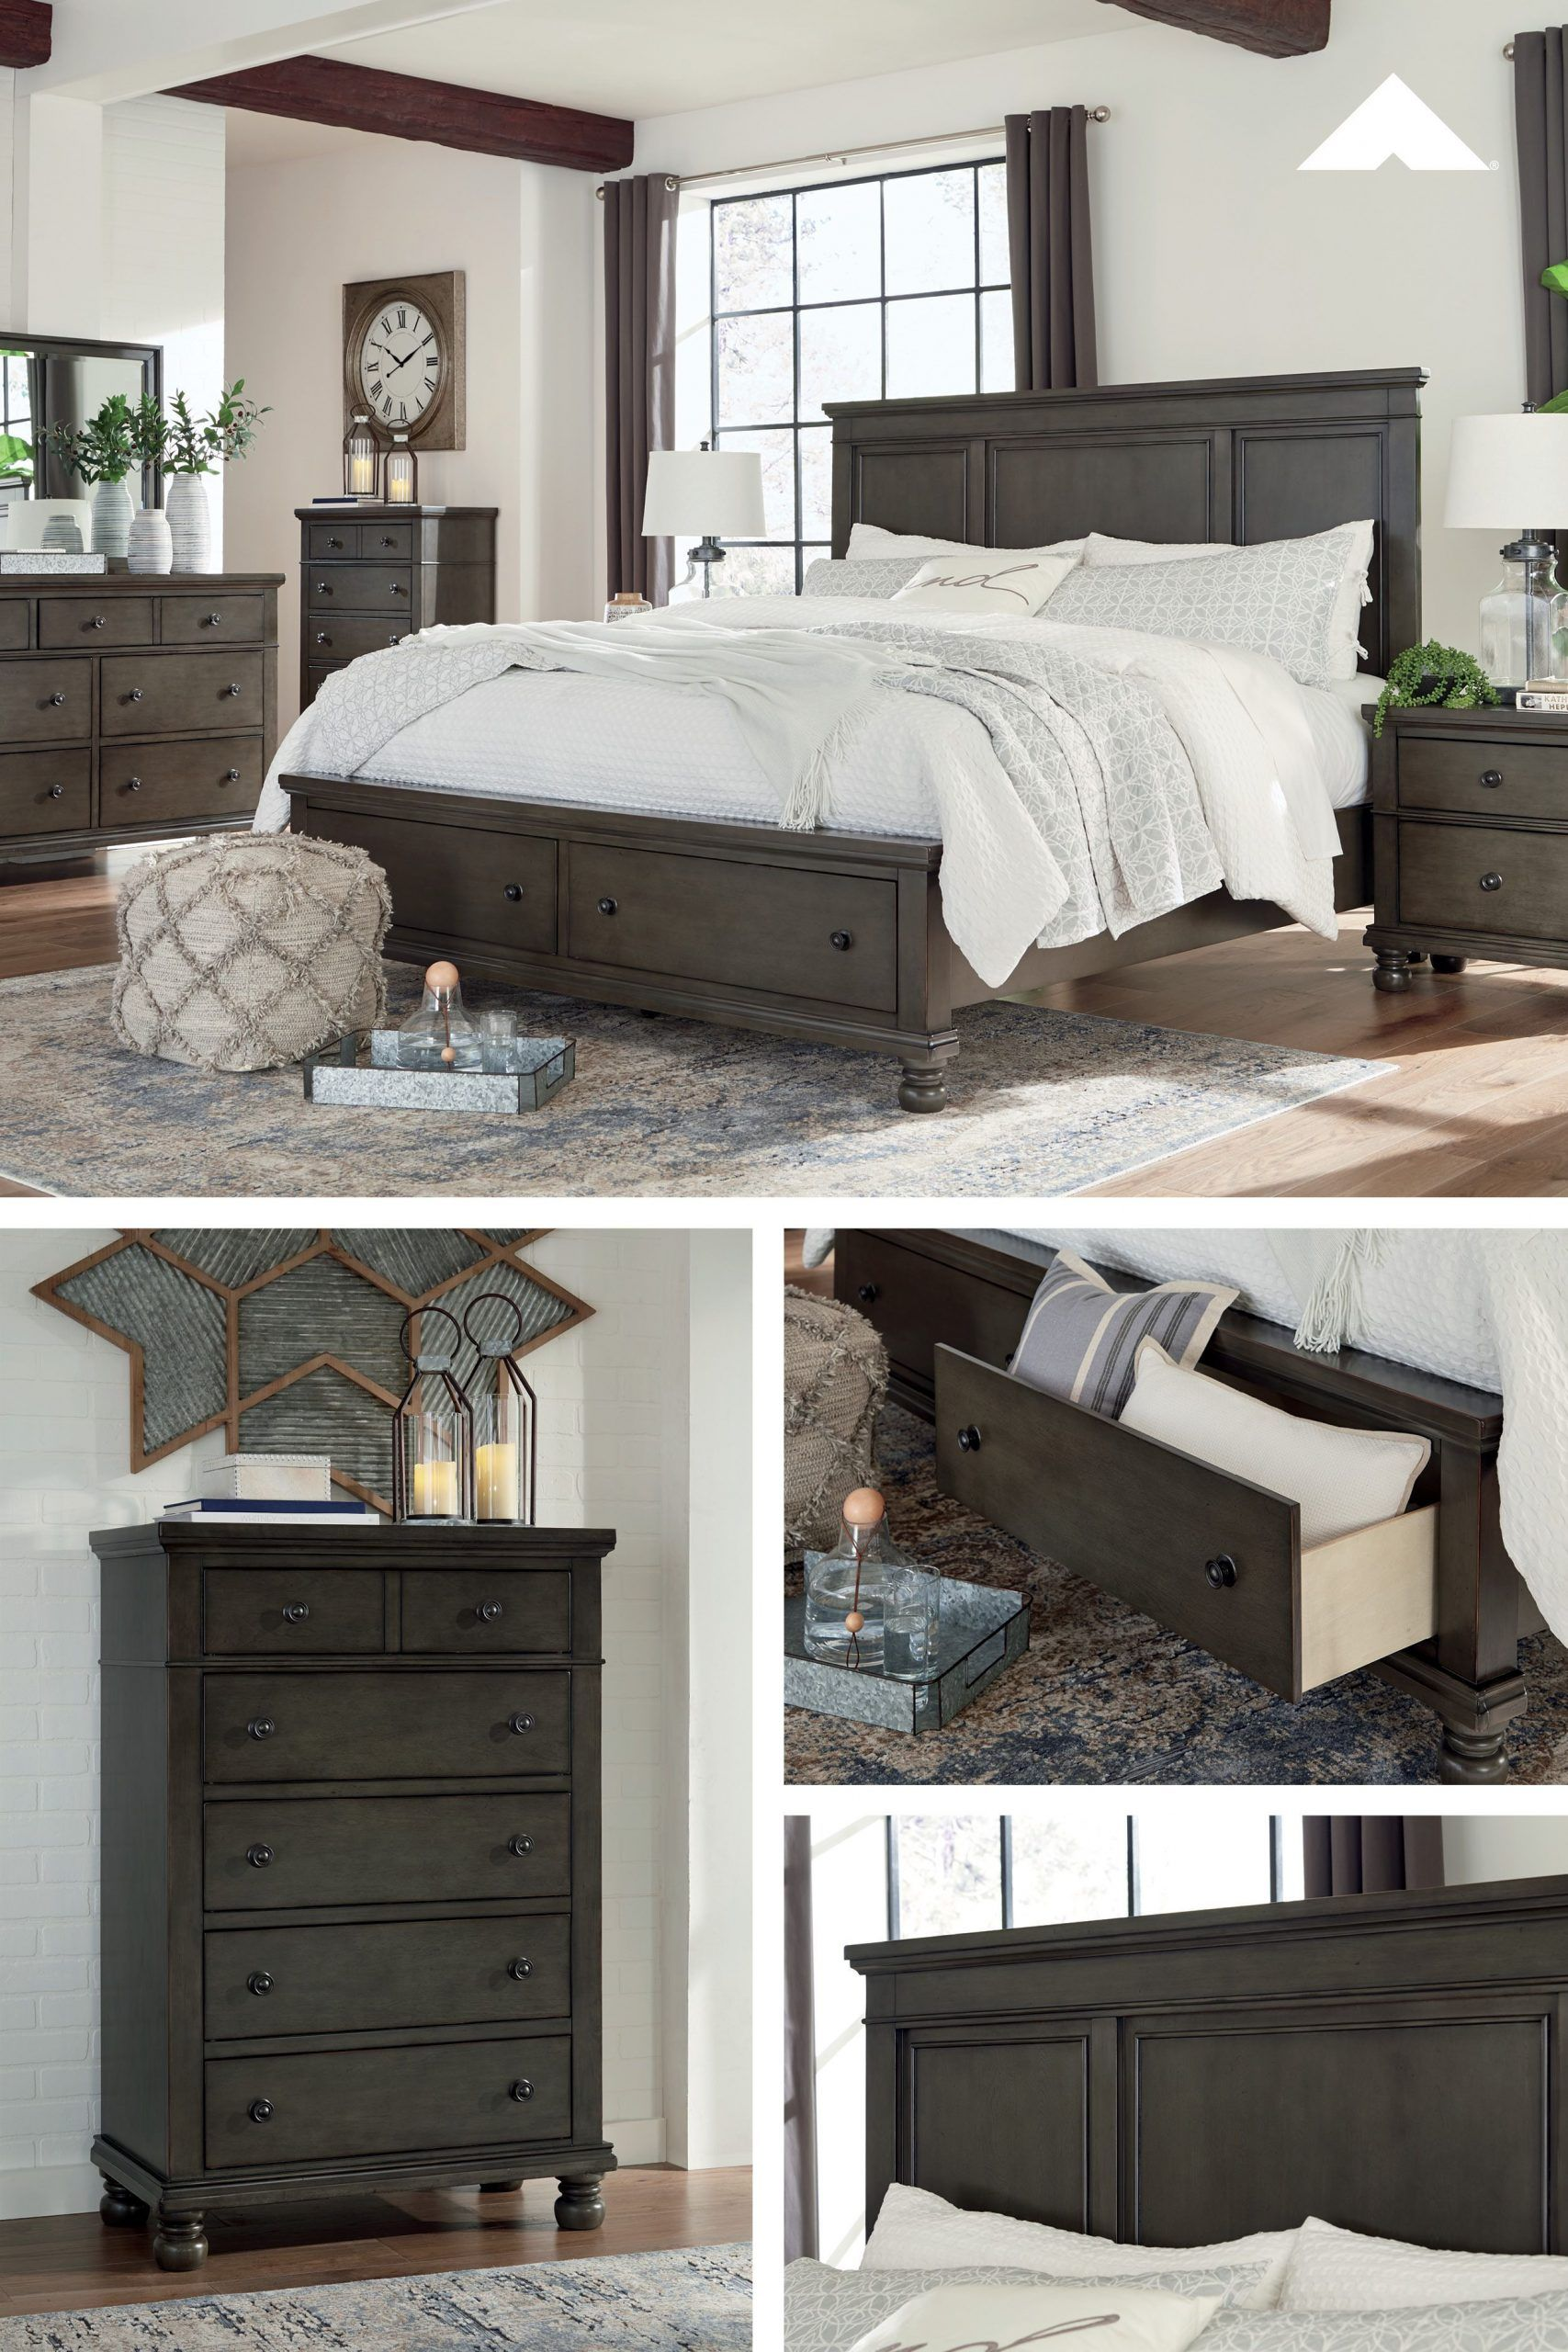 Ashley Furniture Bedroom Set Price Devensted Dark Gray Master Bedroom By Ashley Furniture 편안한 침실 침실 가구 세트 소박한 침실